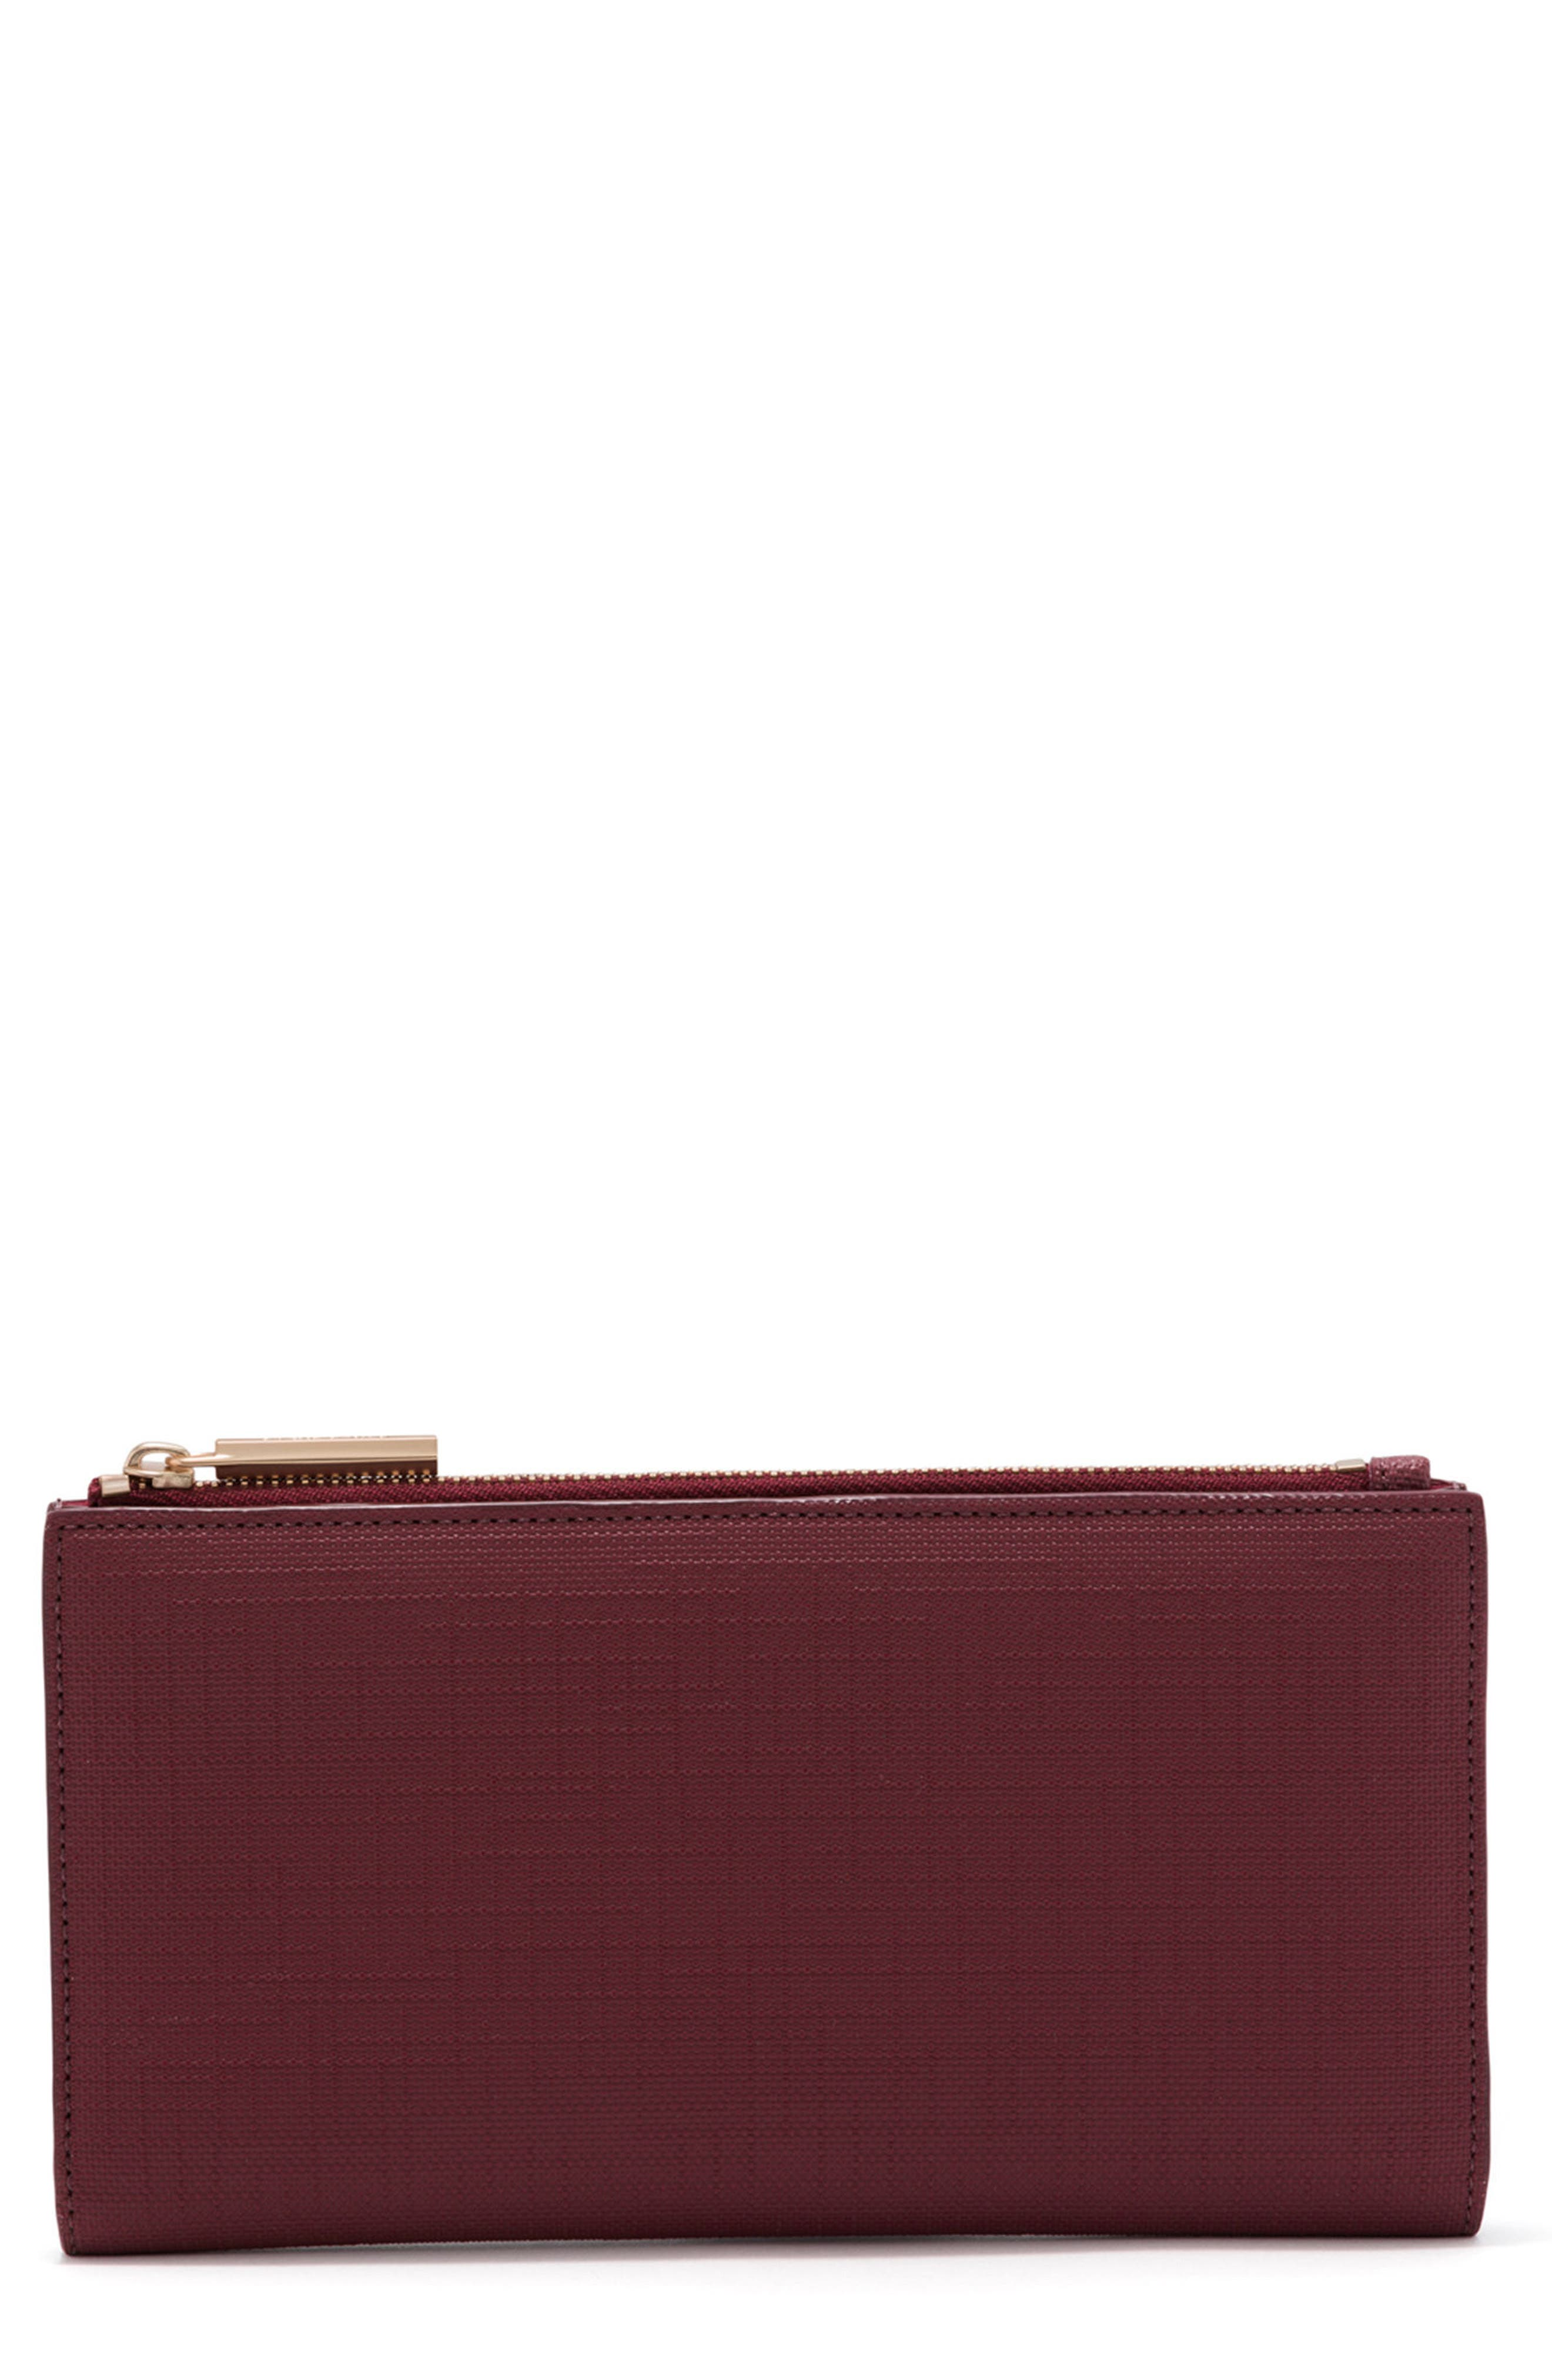 Signature Slim Coated Canvas Wallet,                         Main,                         color, Syrah